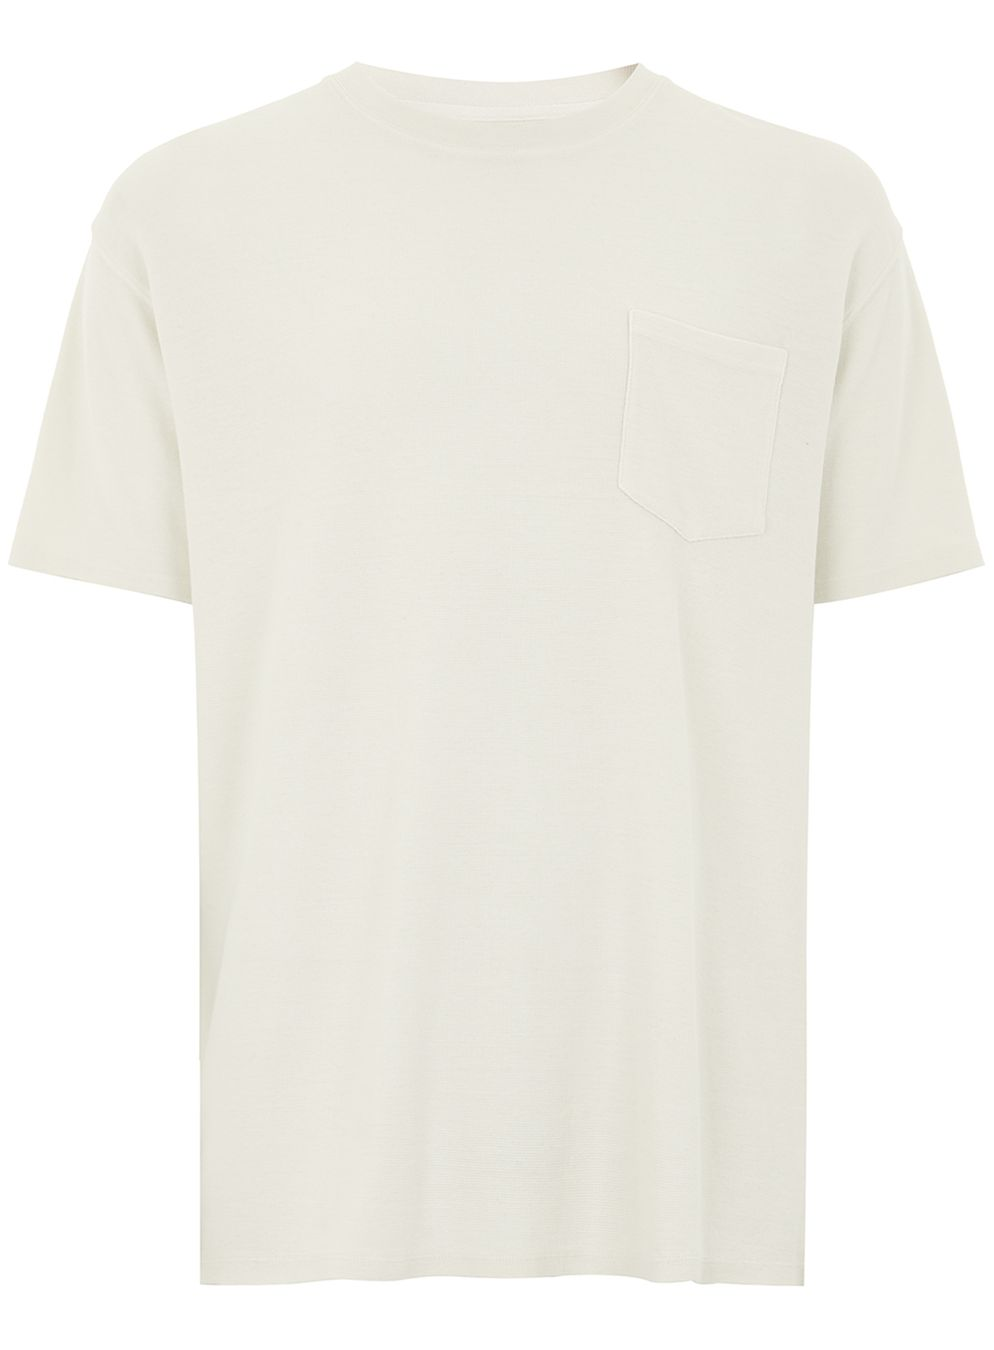 LTD Ecru Textured T-Shirt